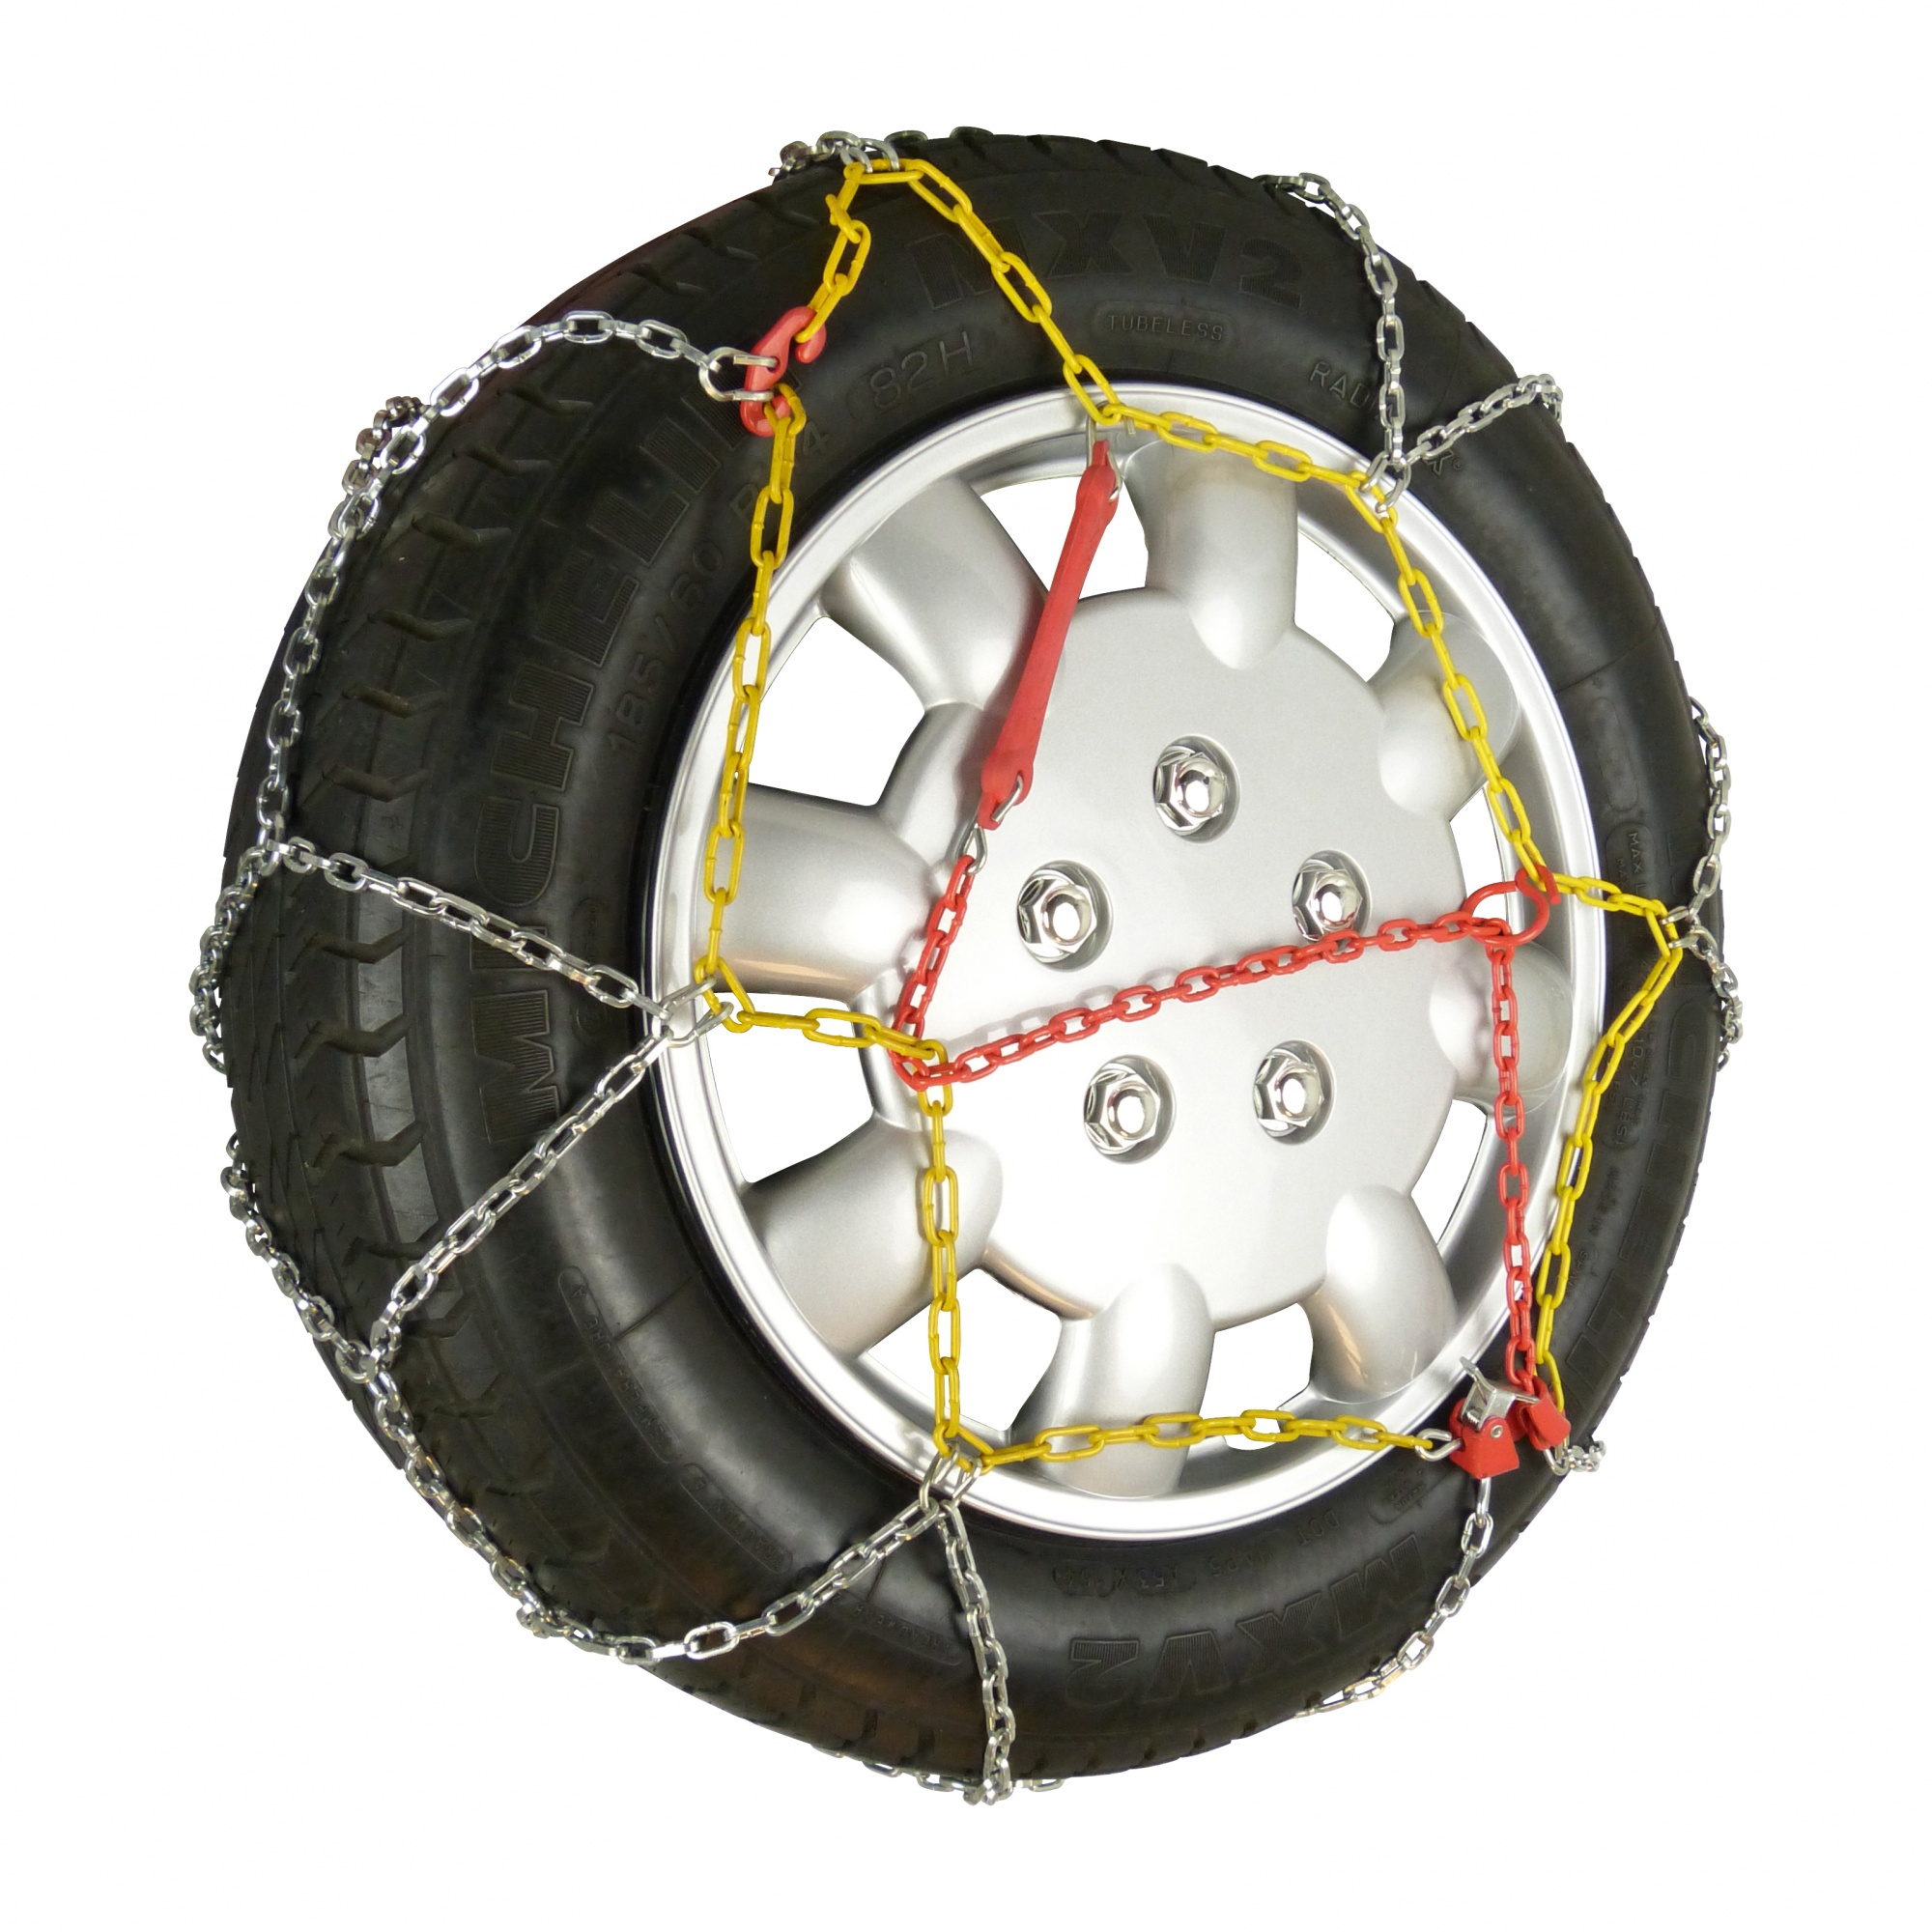 carpoint snow chains knn 70 175 75 14 to 205 40 17. Black Bedroom Furniture Sets. Home Design Ideas